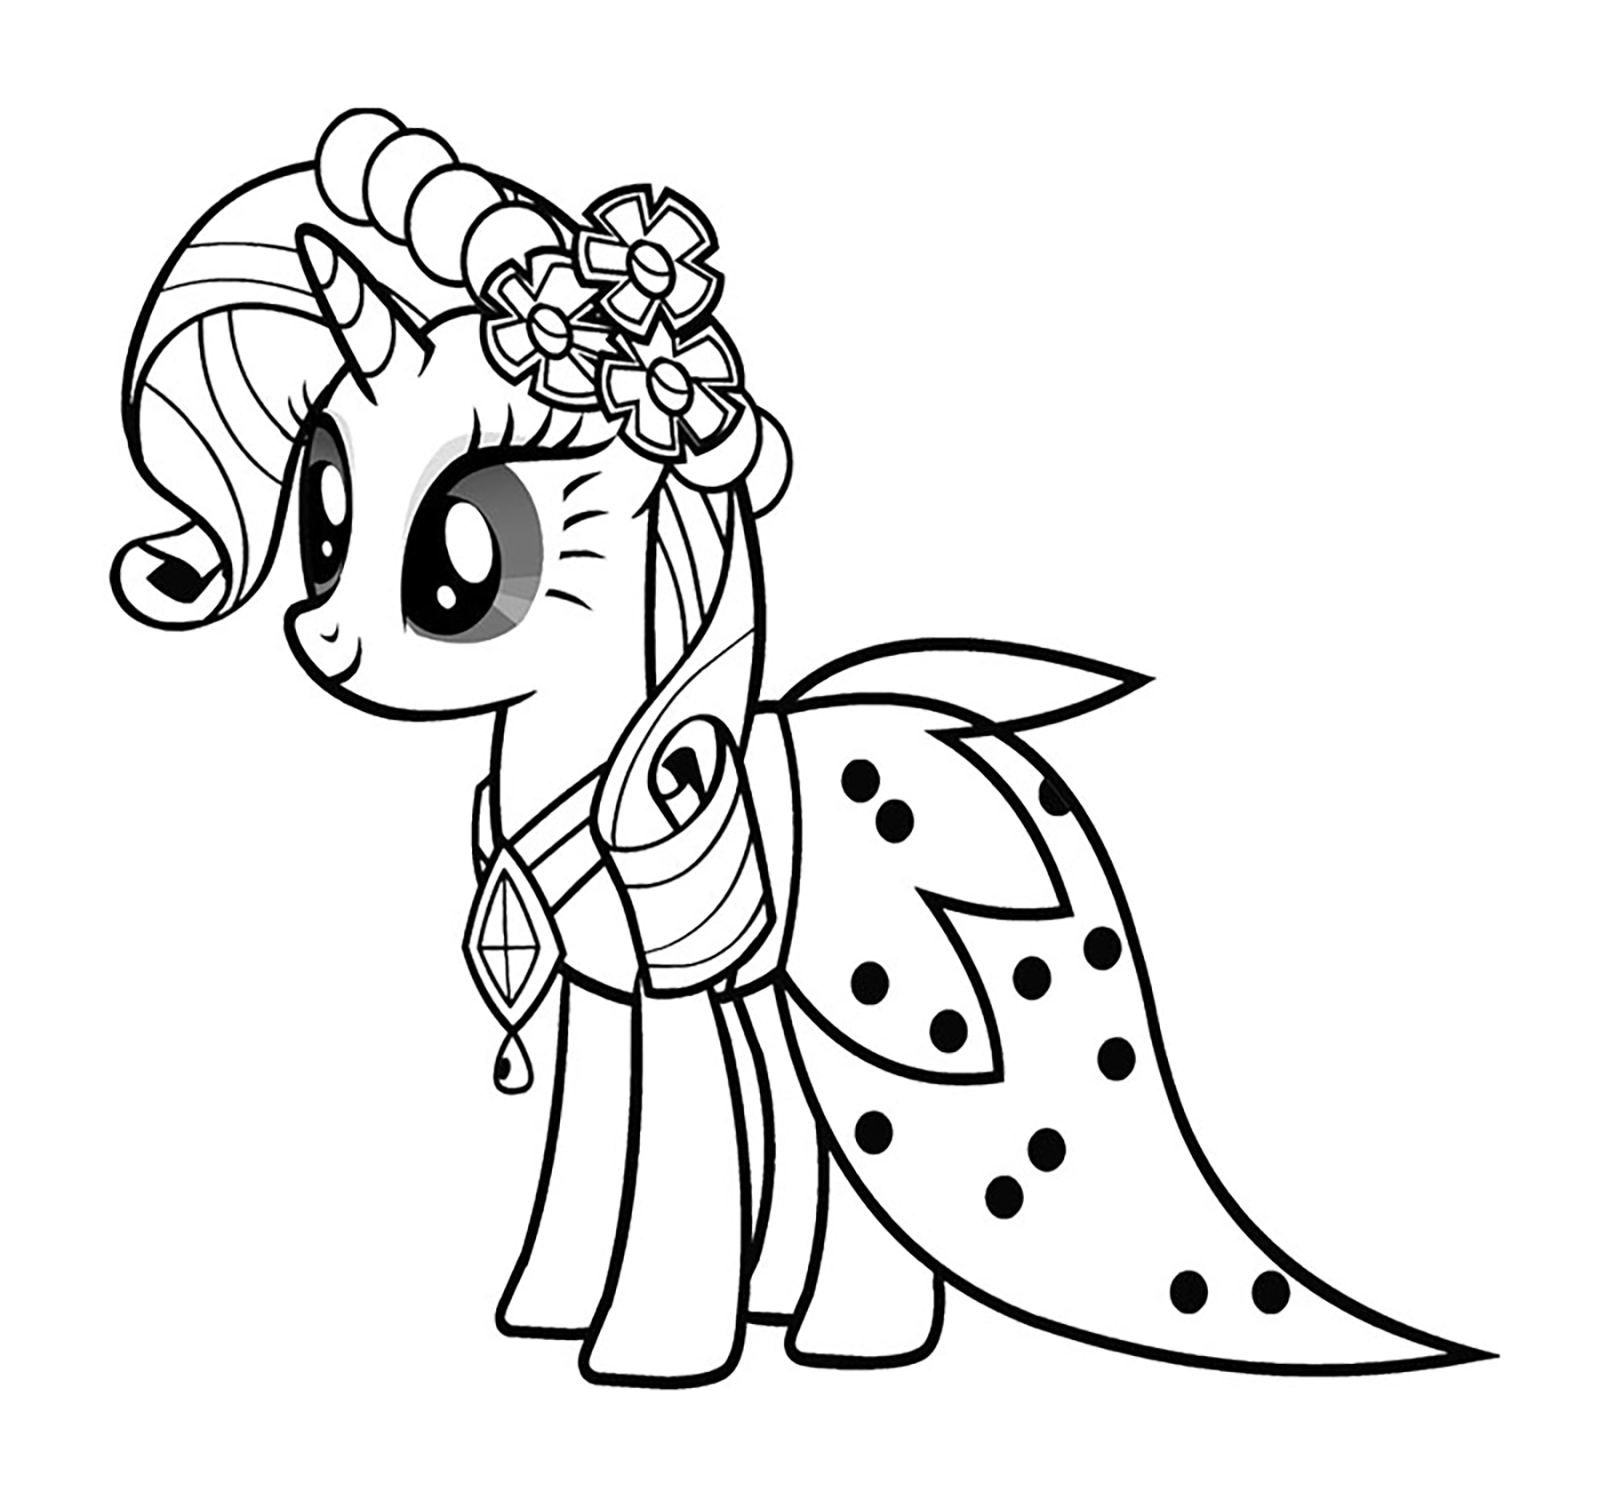 My Little Pony Starlight Glimmer Coloring Pages : Starlight glimmer pony coloring page pages